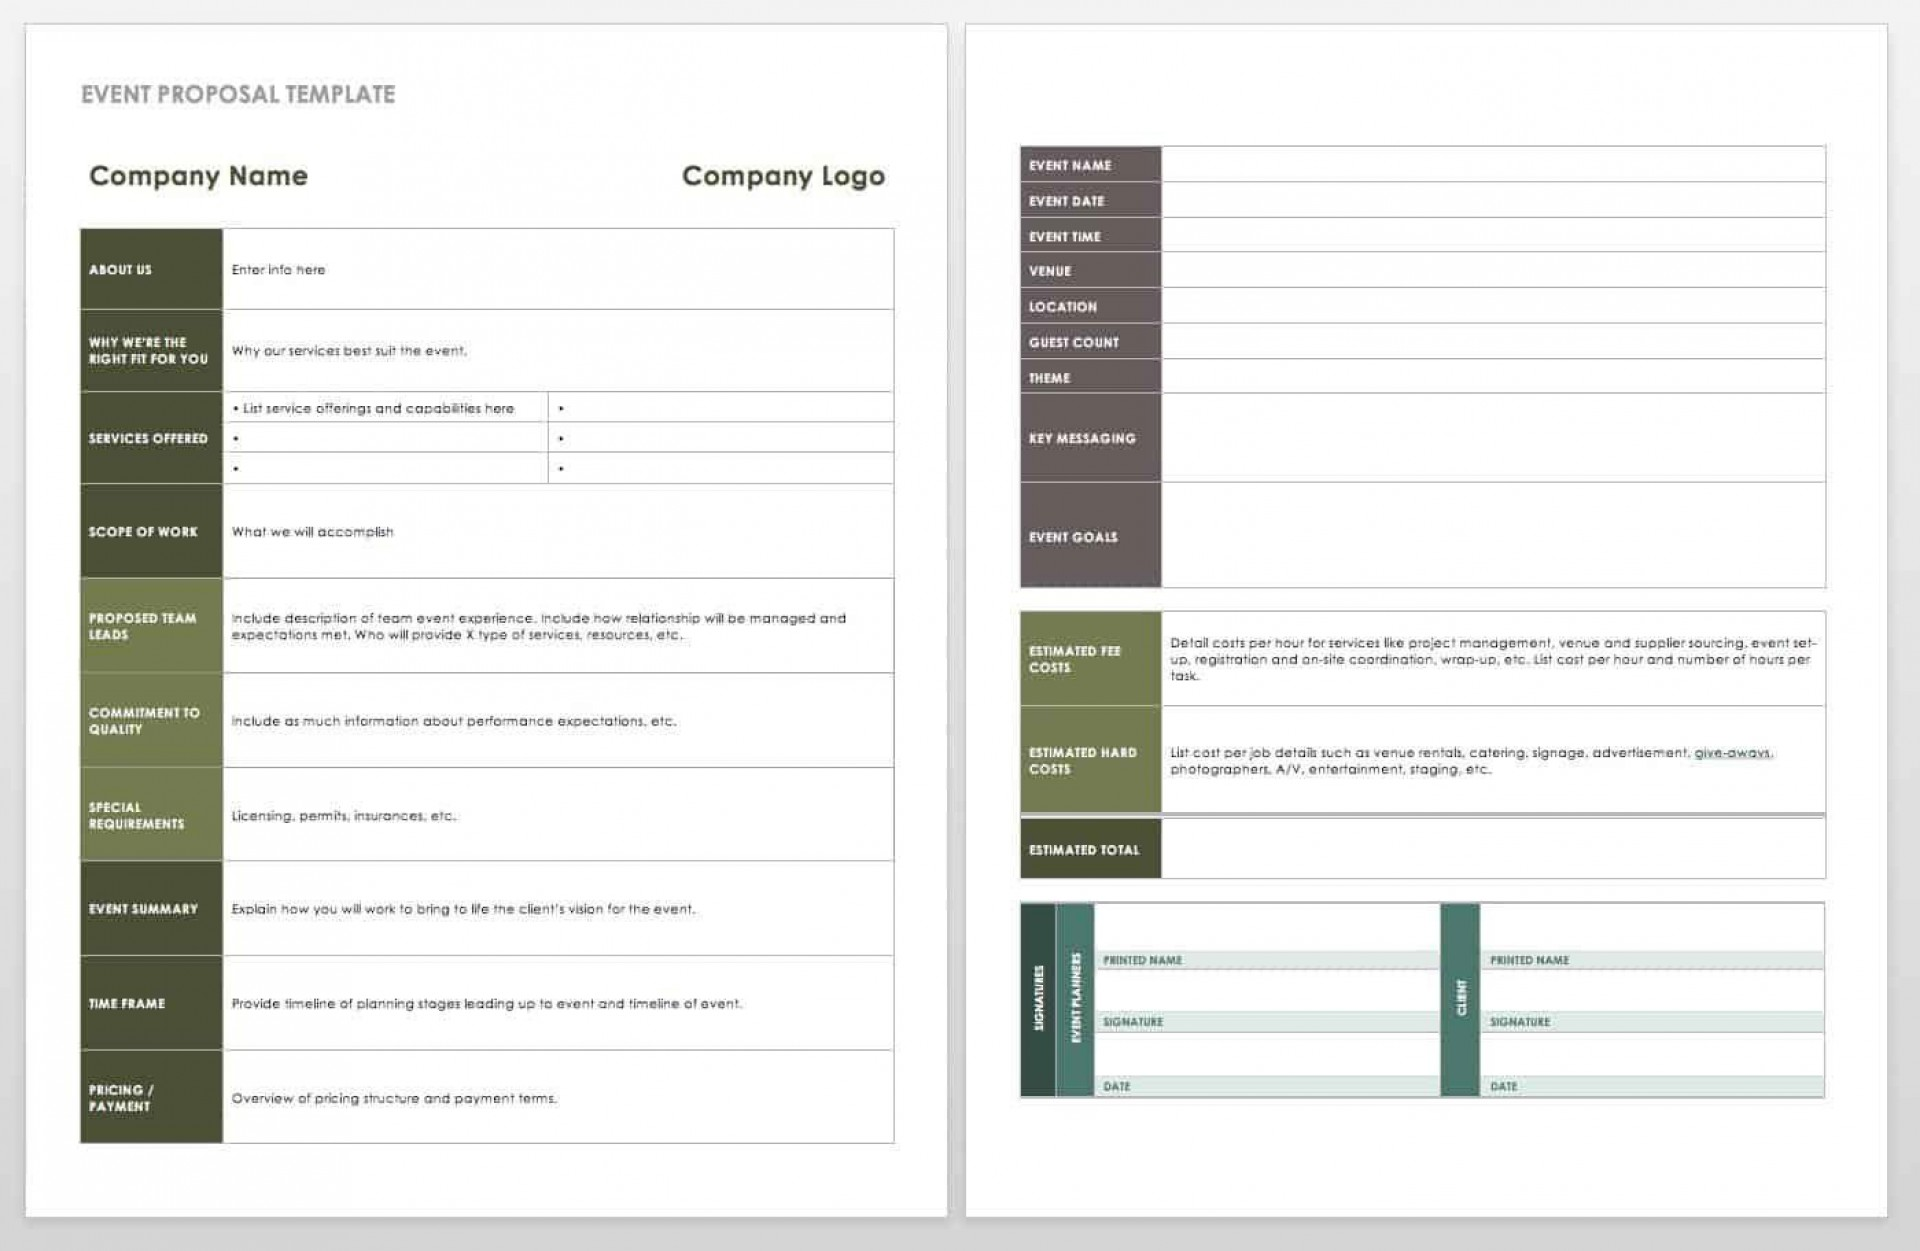 007 Magnificent Free Event Planning Template Checklist Picture  Planner Party1920